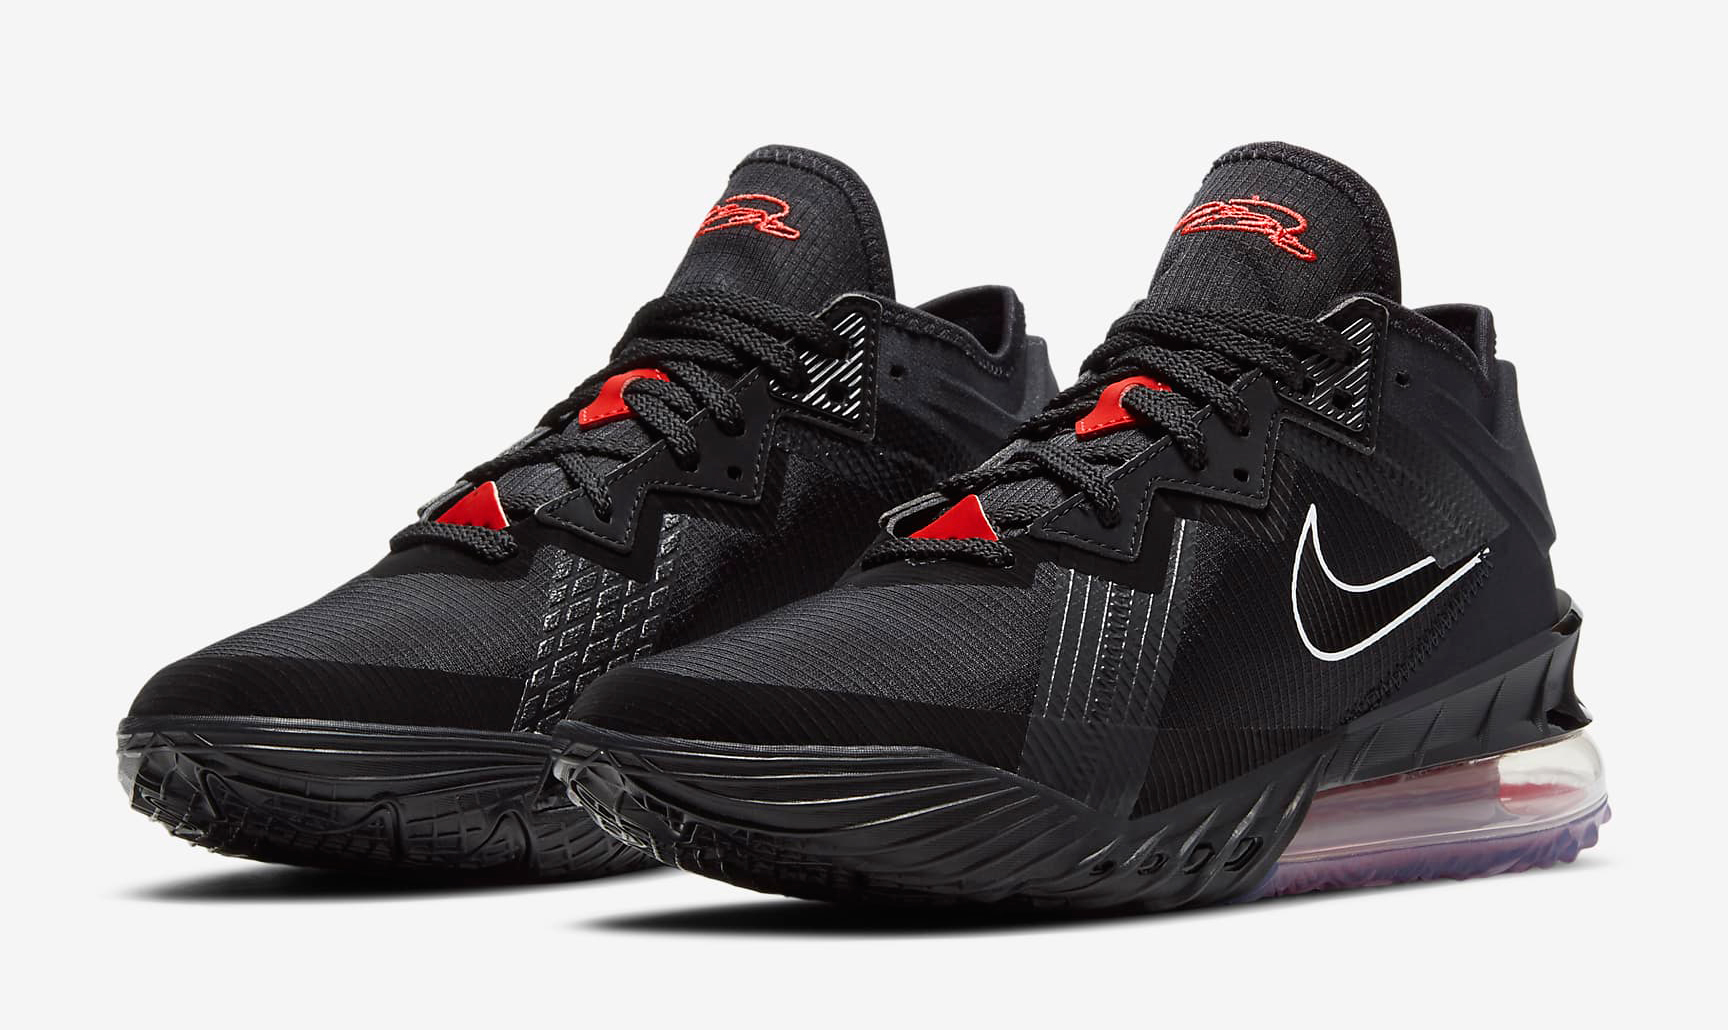 nike-lebron-18-low-bred-black-university-red-release-date-price-where-to-buy-1